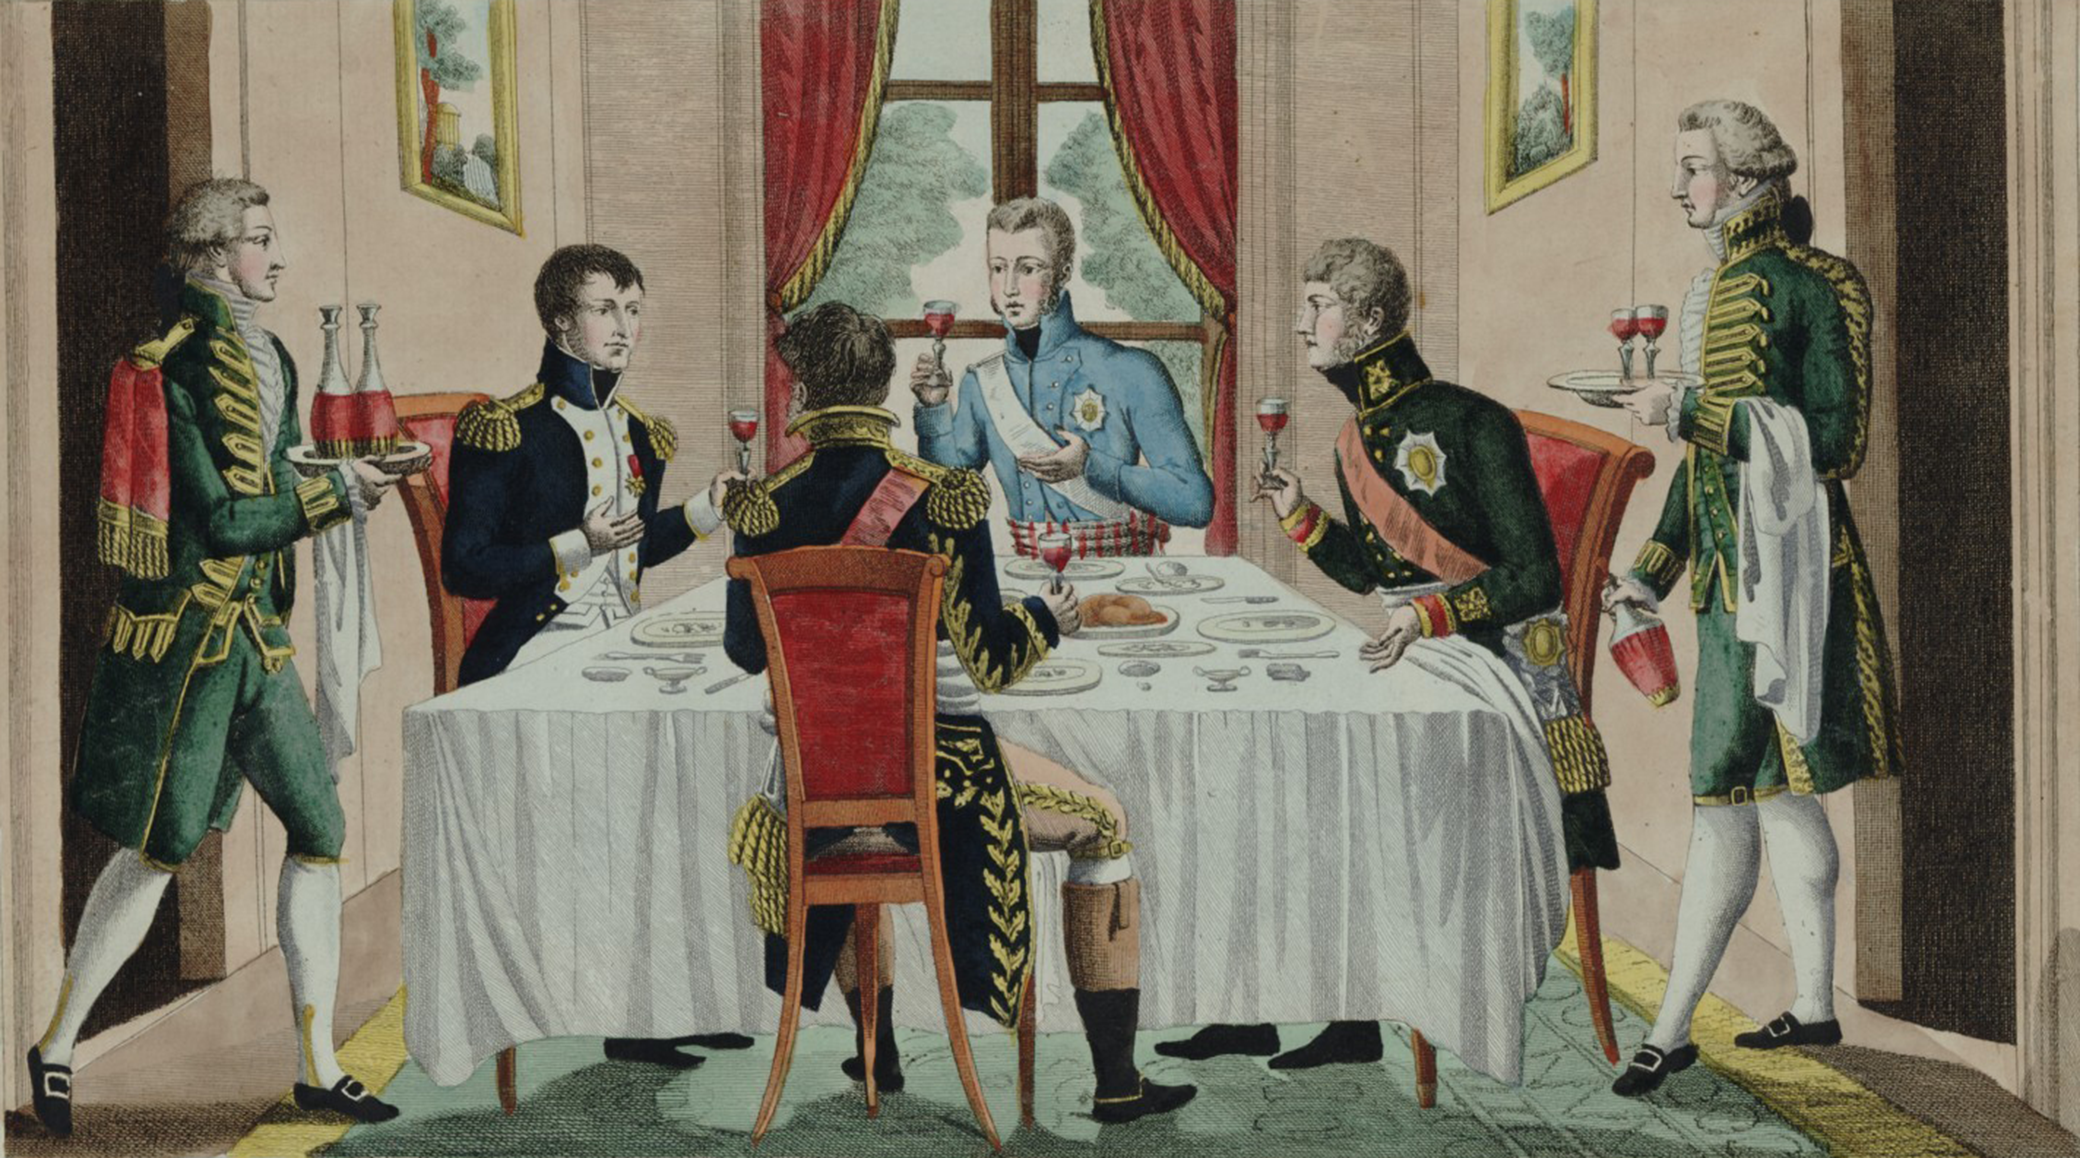 Dinner with Napoleon, Alexandre I, and Frederick III, 1807. National Library of France, Prints and Photographs Department.